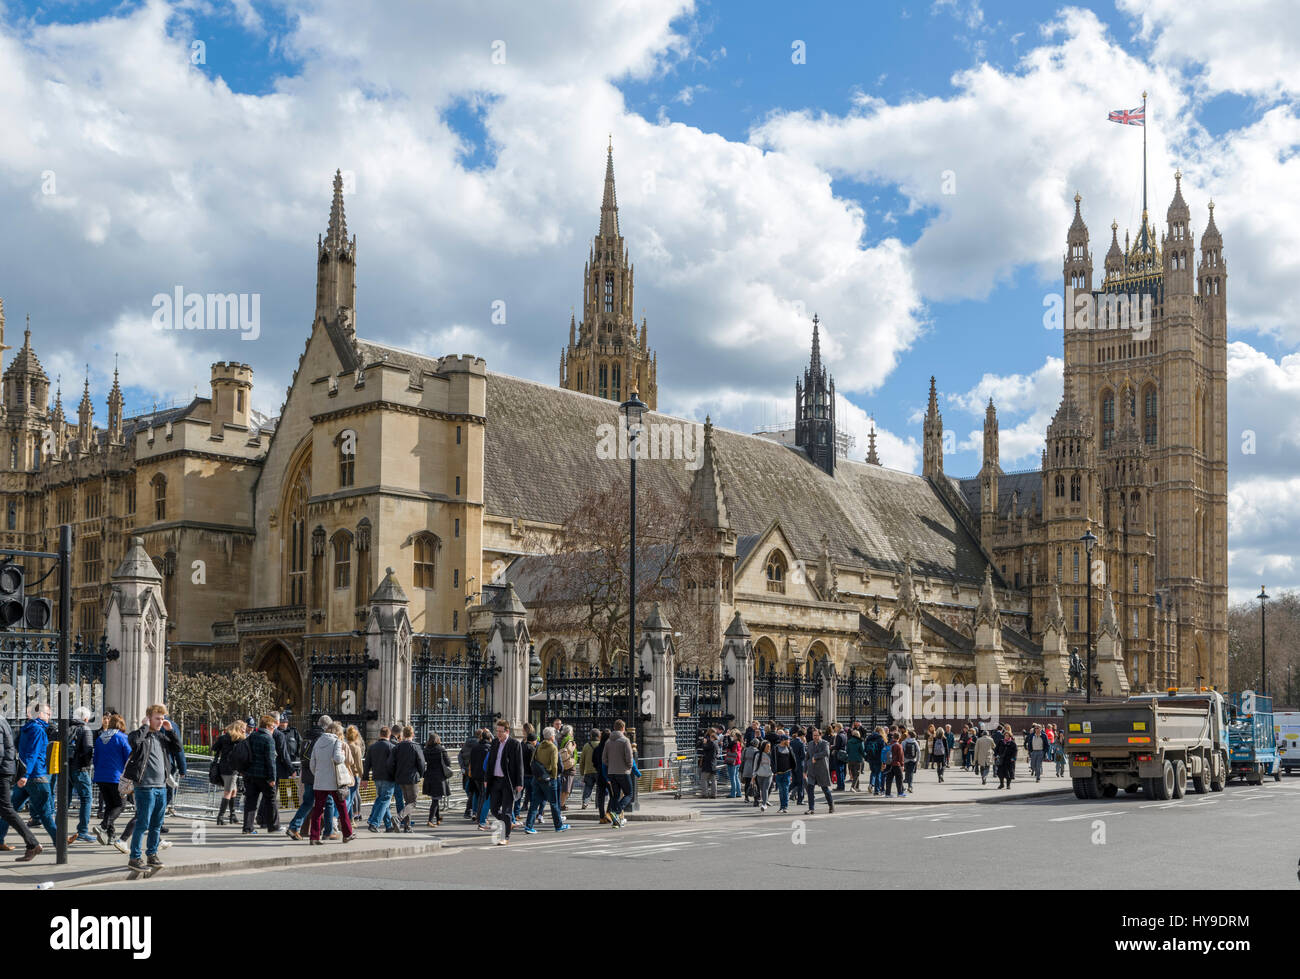 Houses of Parliament from Parliament Square with Westminster Hall in the foreground, London, England, UK - Stock Image